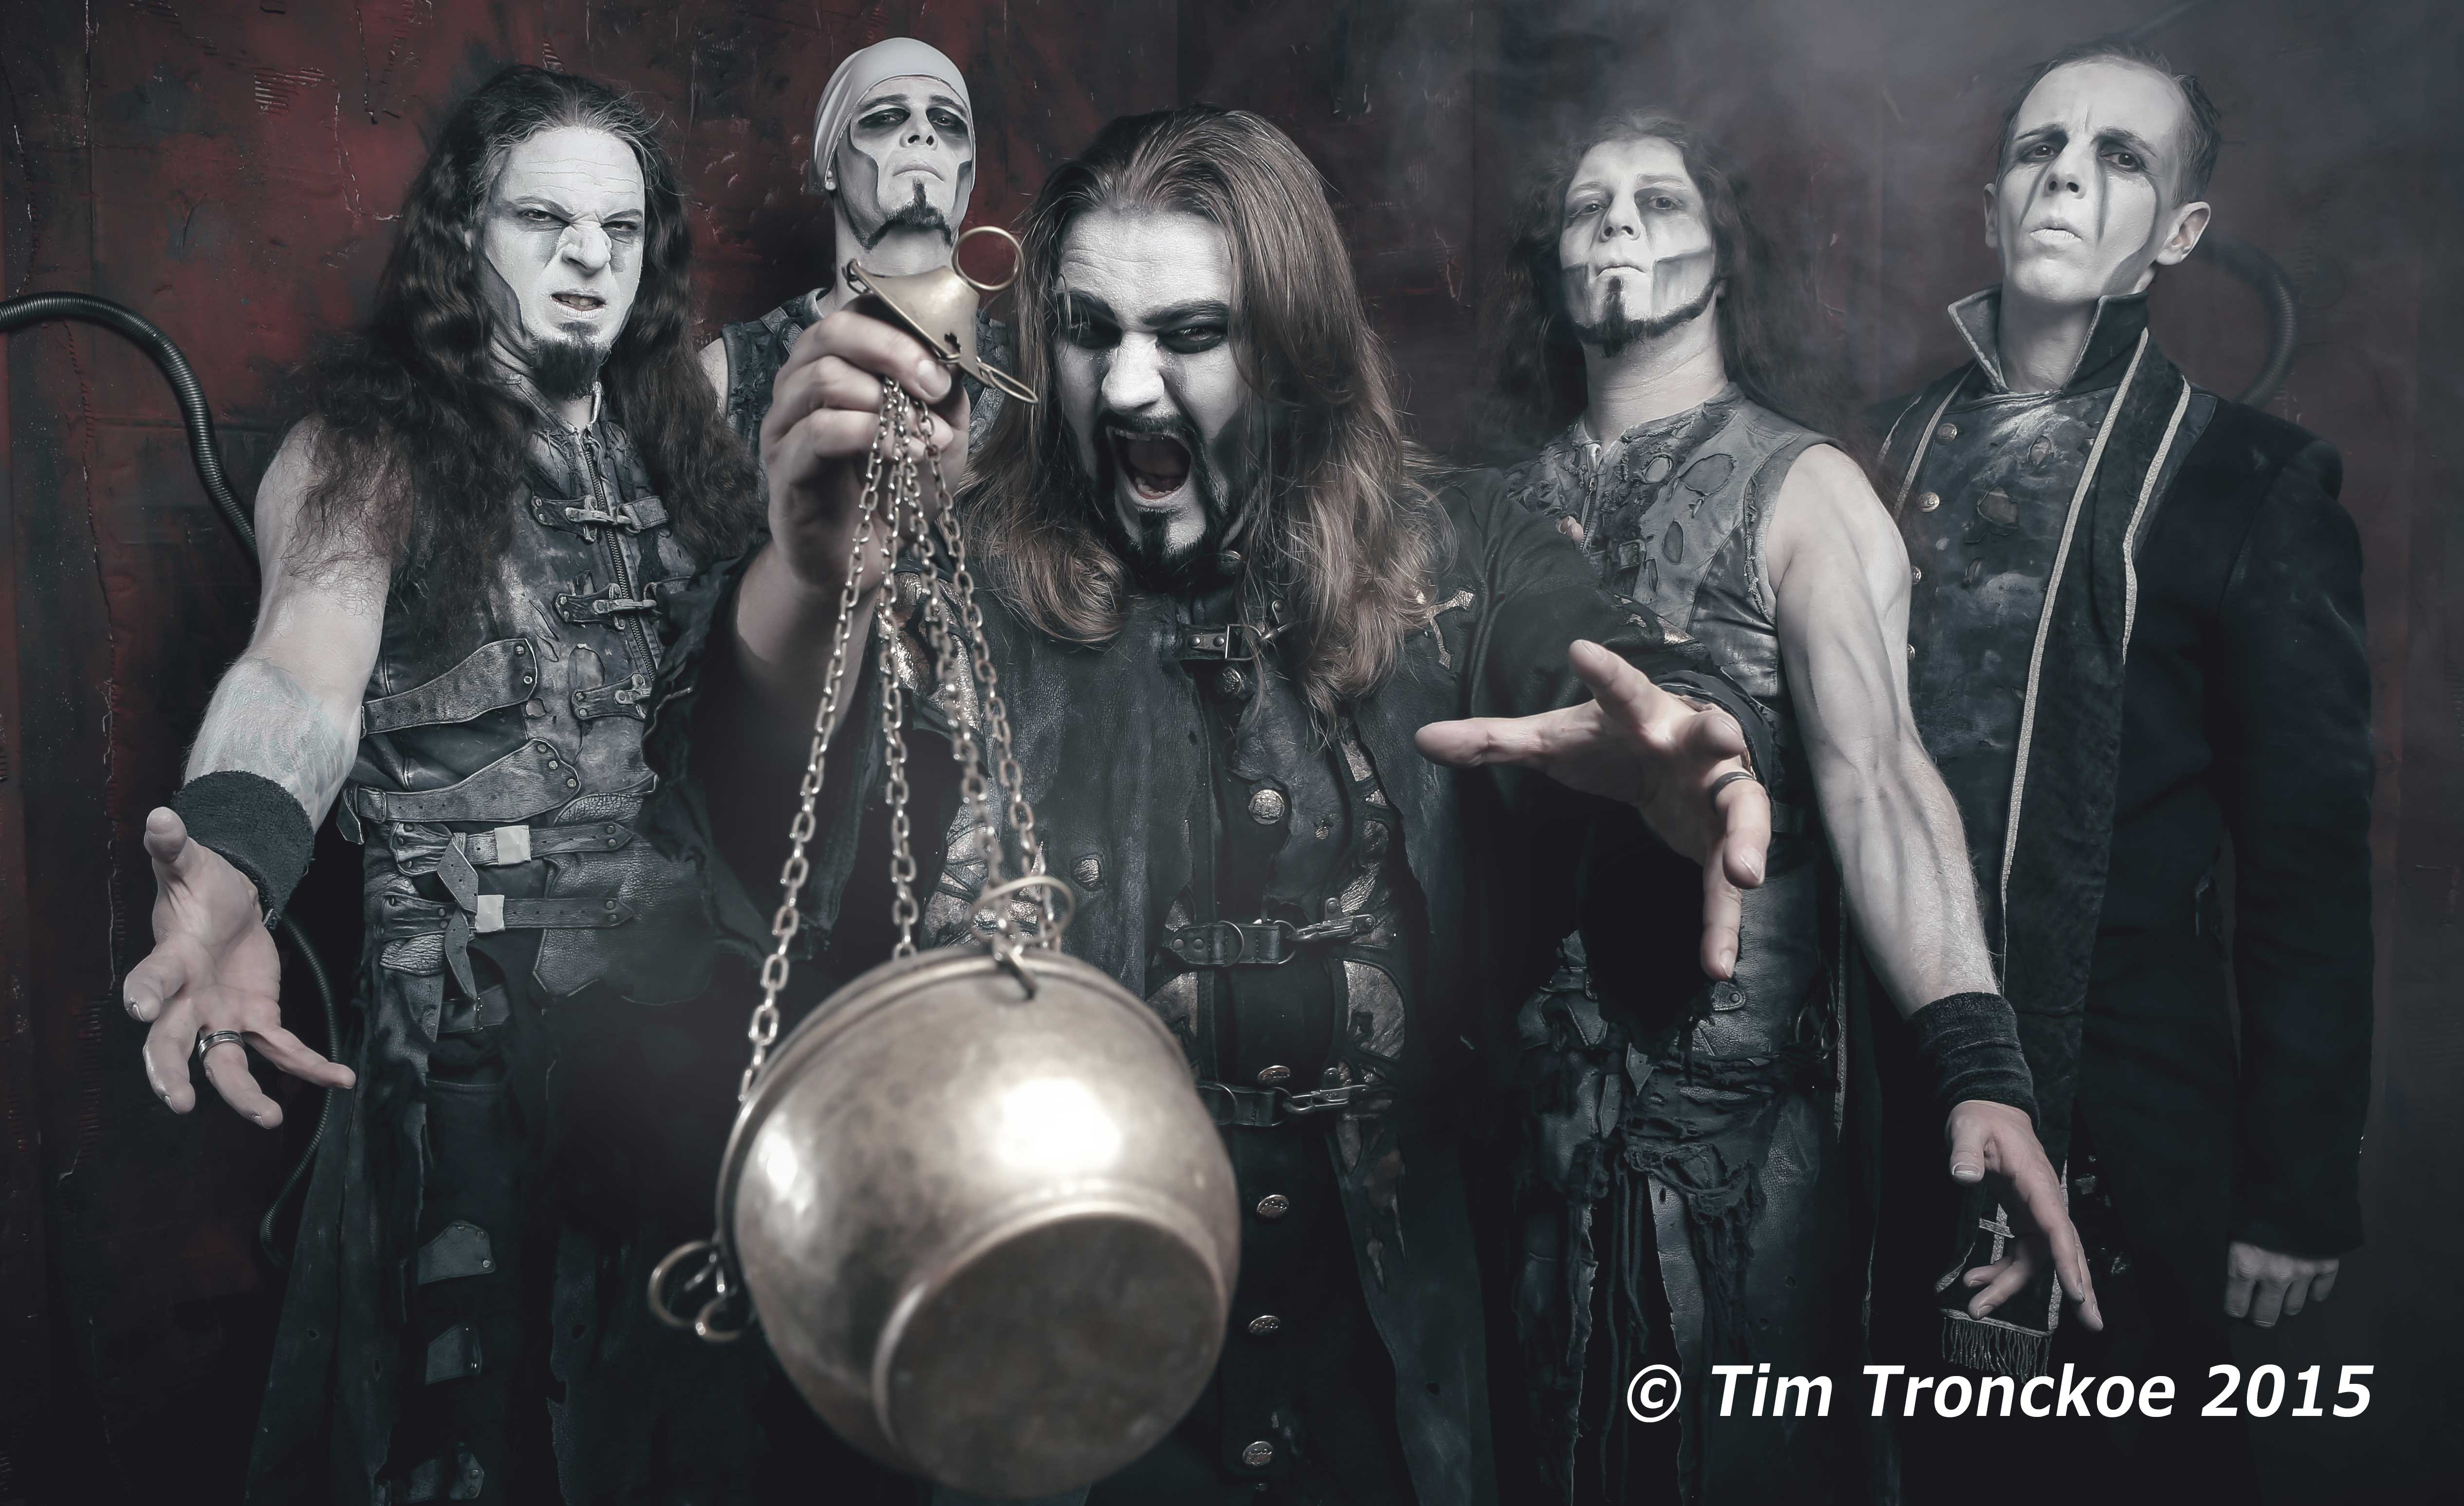 Powerwolf photo by Tim Tronckoe